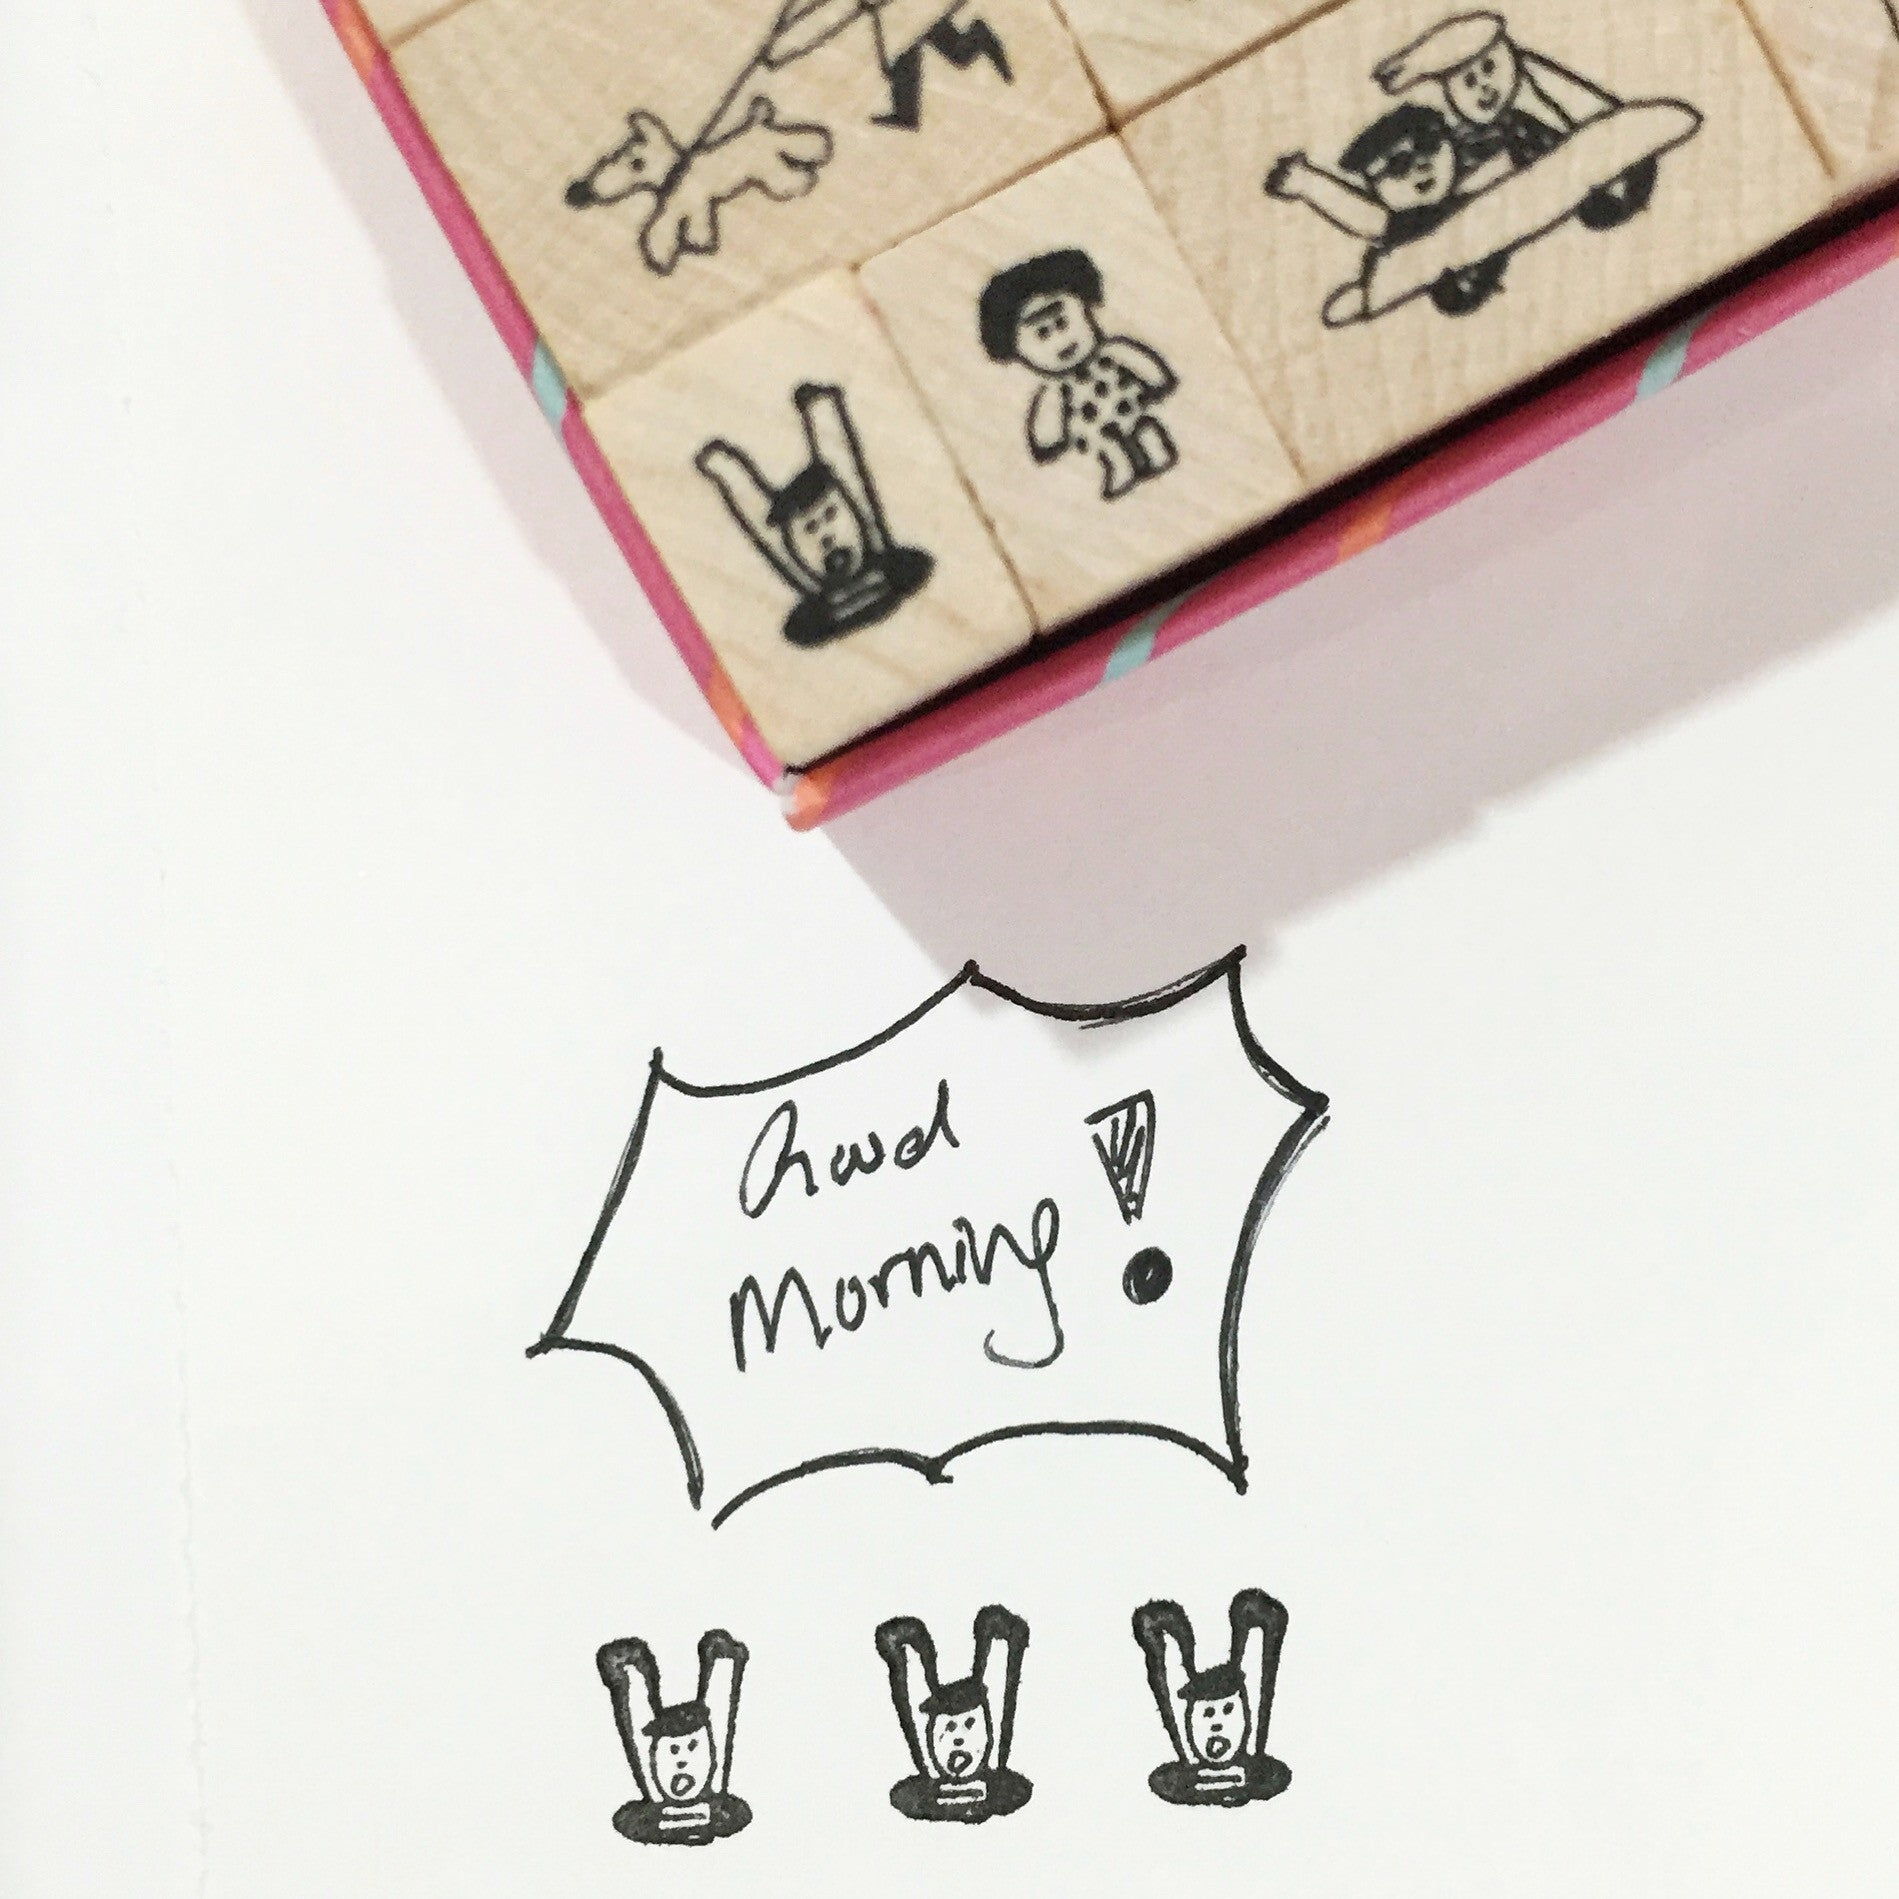 AIUEO Miniature Human Stamps Set